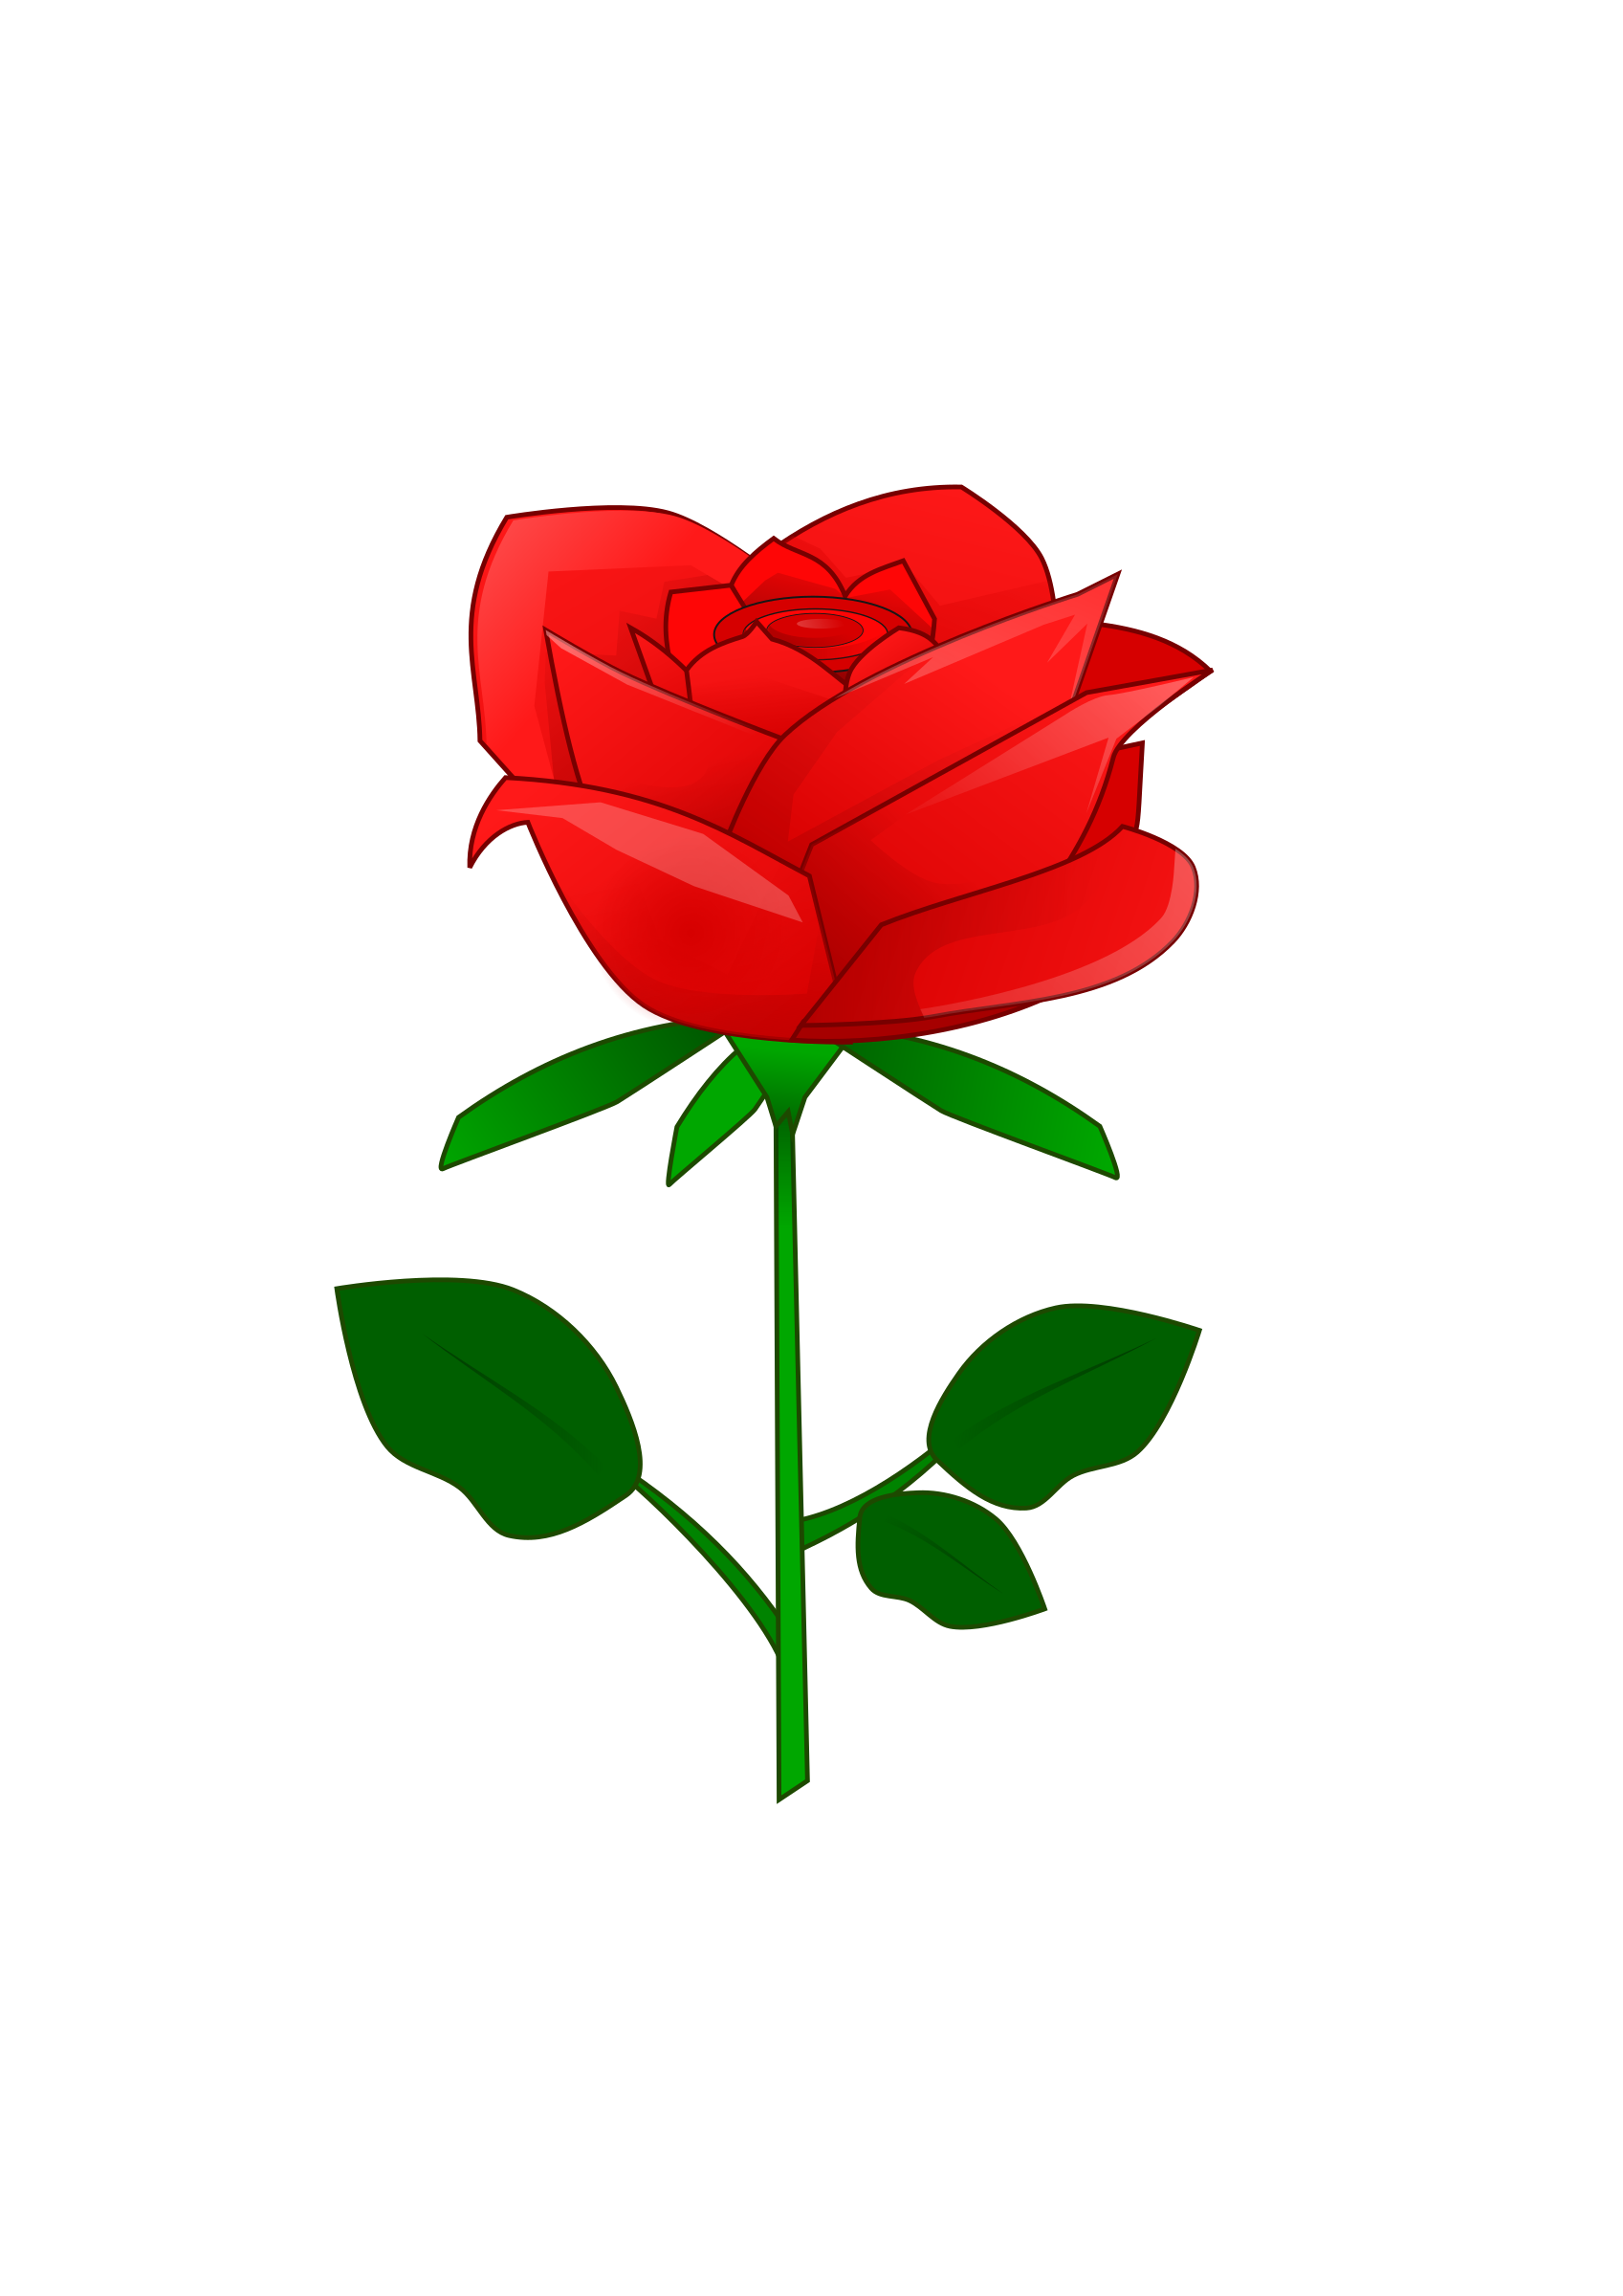 Big red rose clipart.